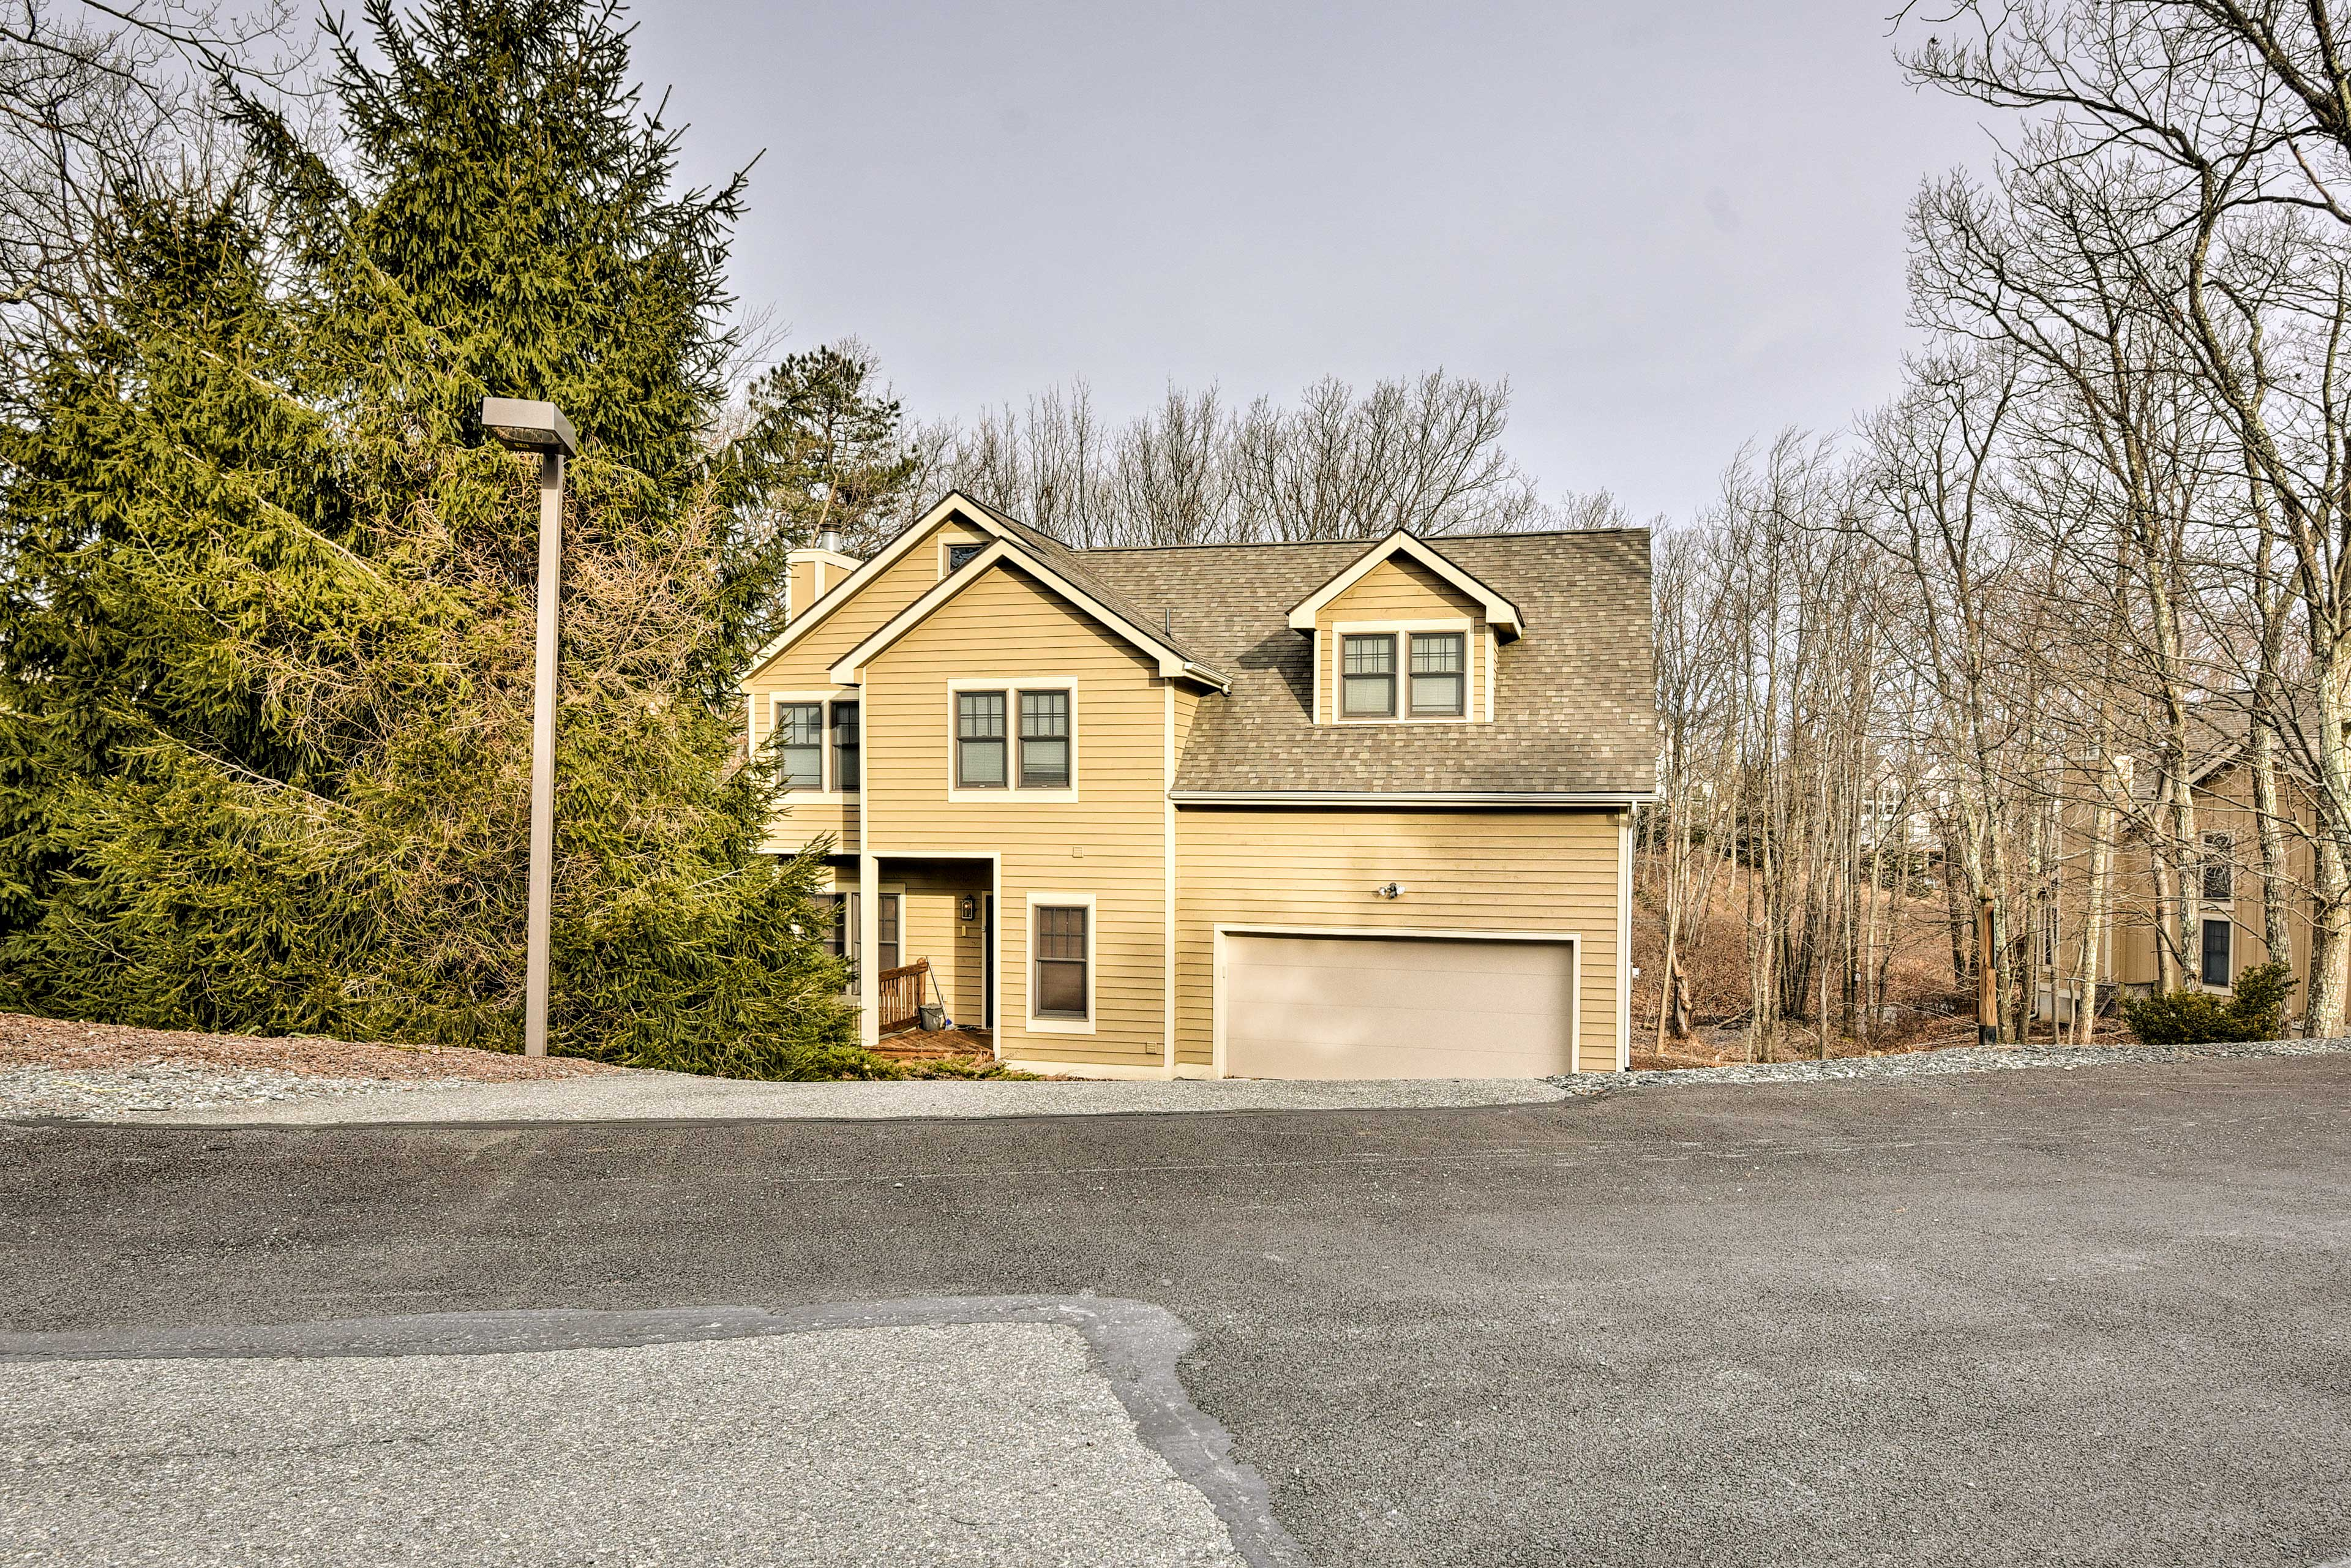 It's hard to find a better Pennsylvania vacation rental in Tannersville!